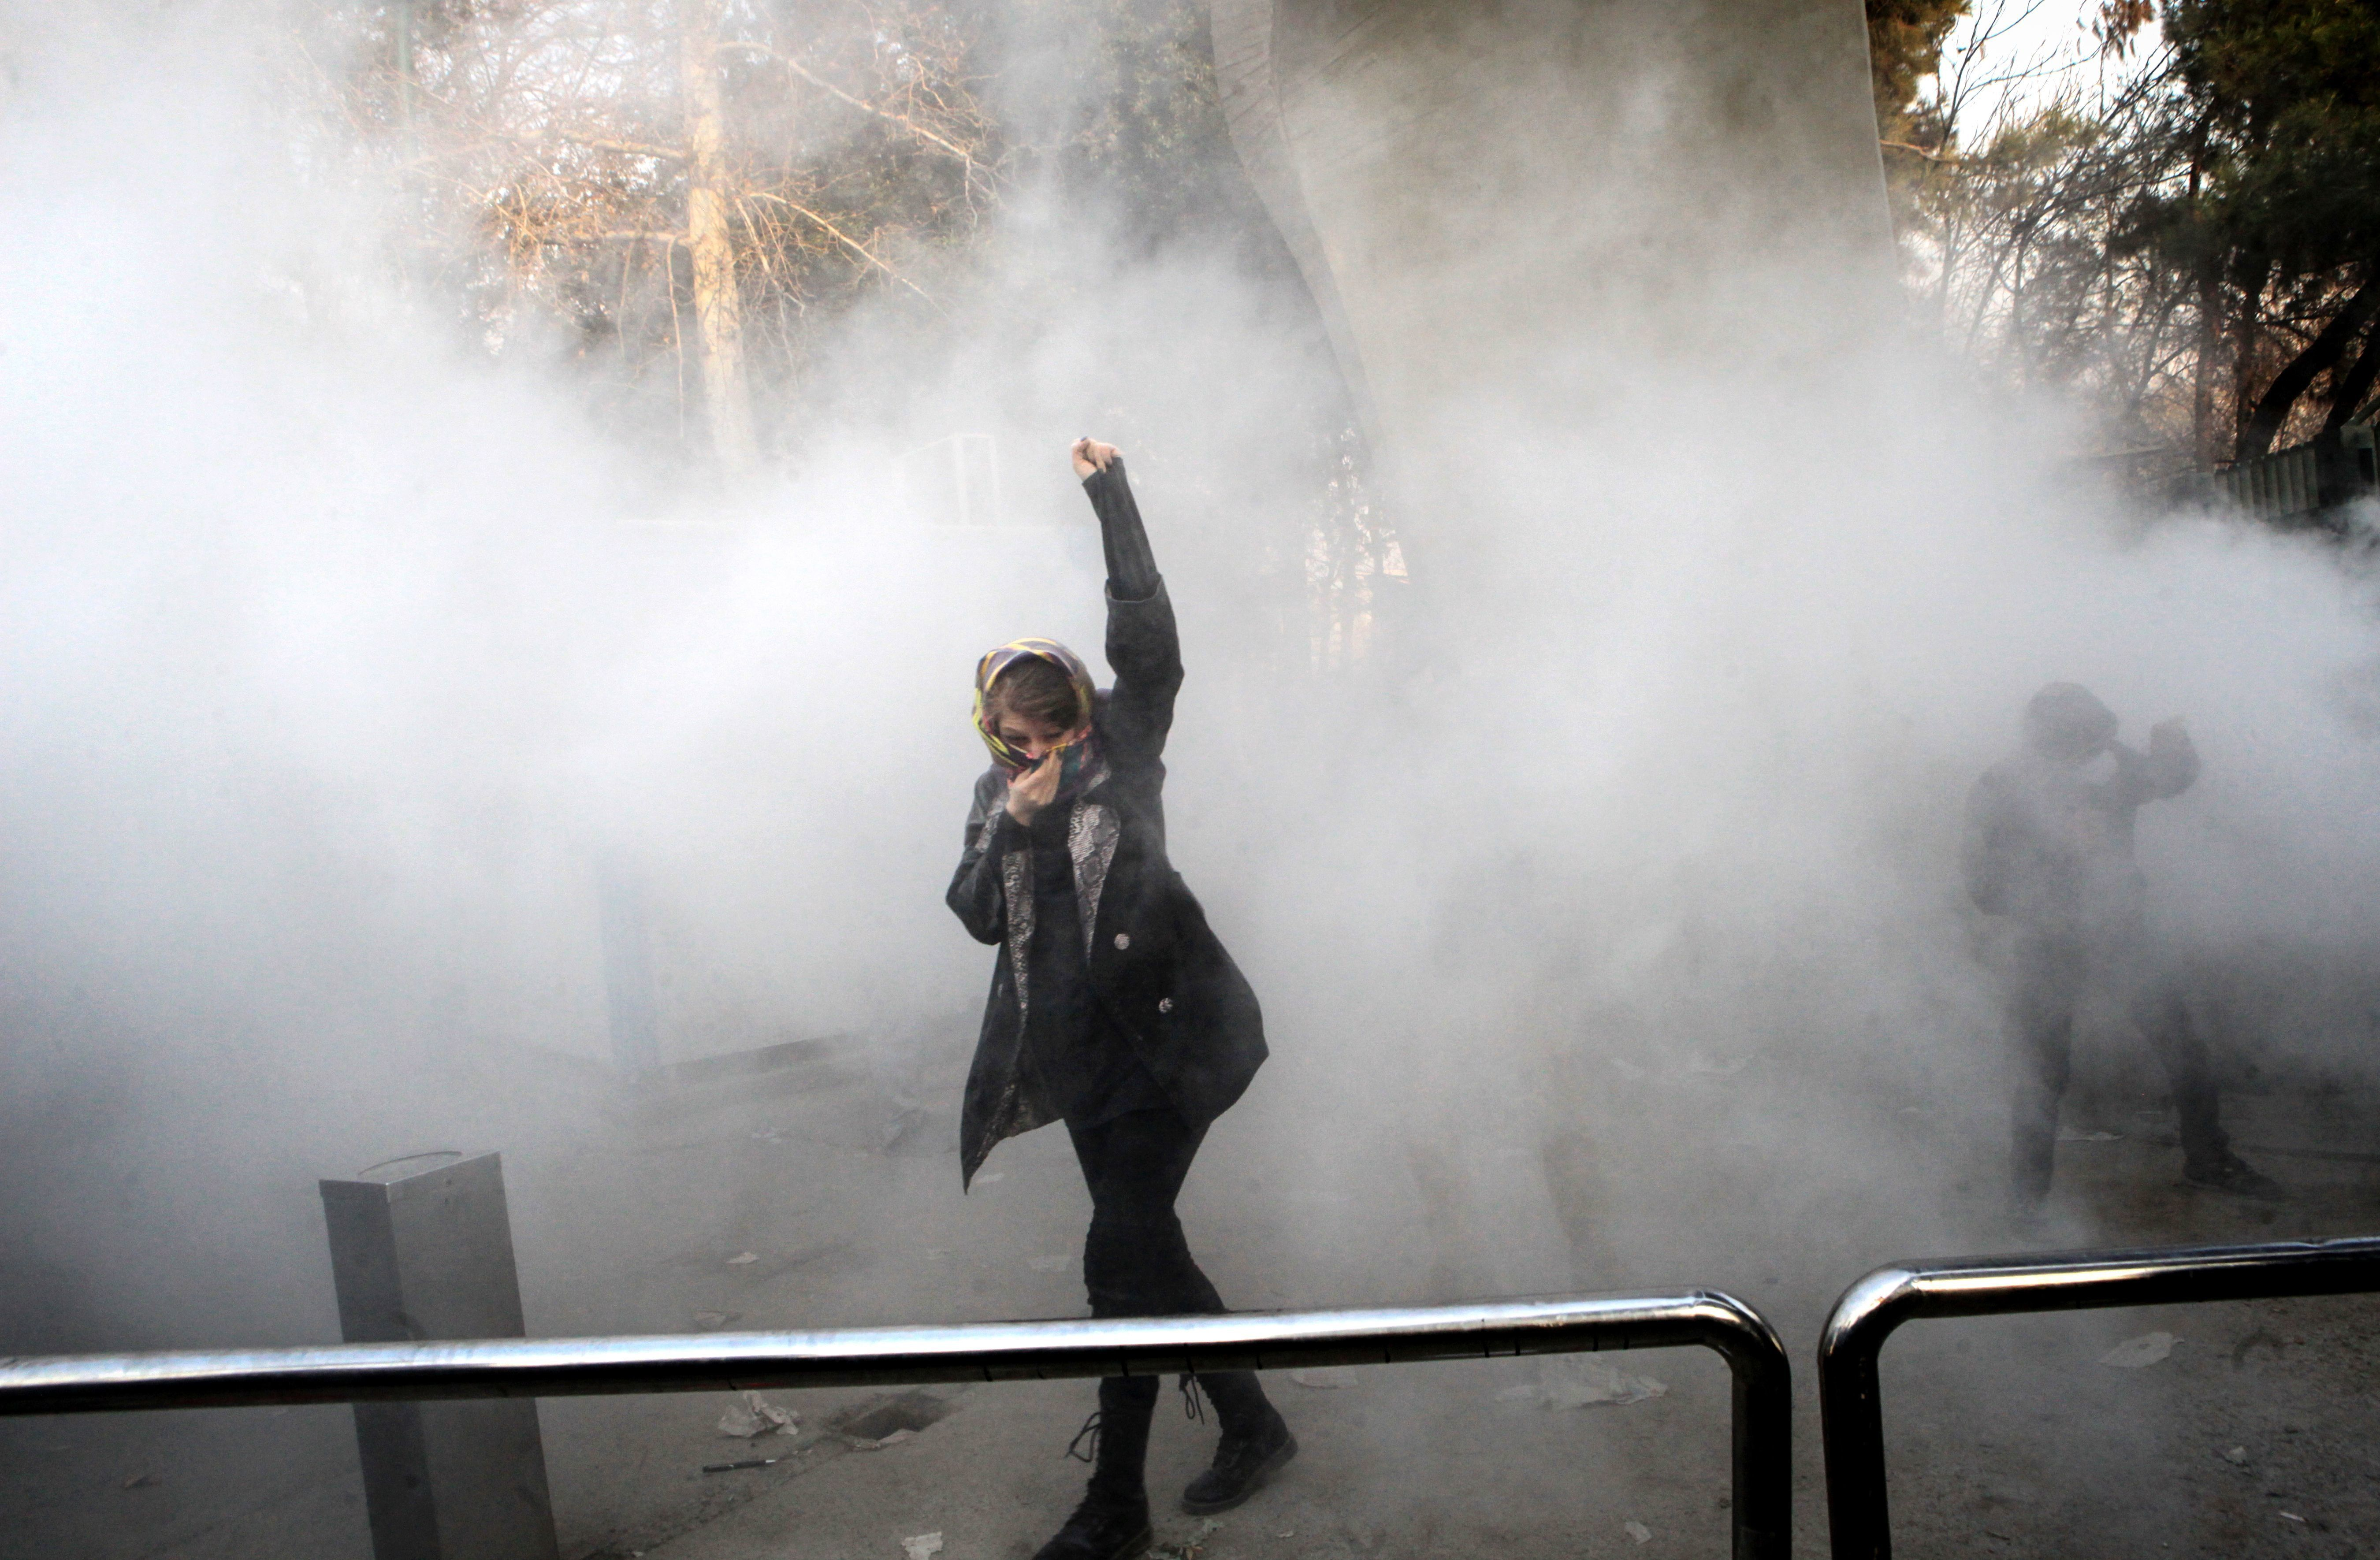 An Iranian woman raises her fist amid the smoke of tear gas at the University of Tehran during a protest driven by anger over